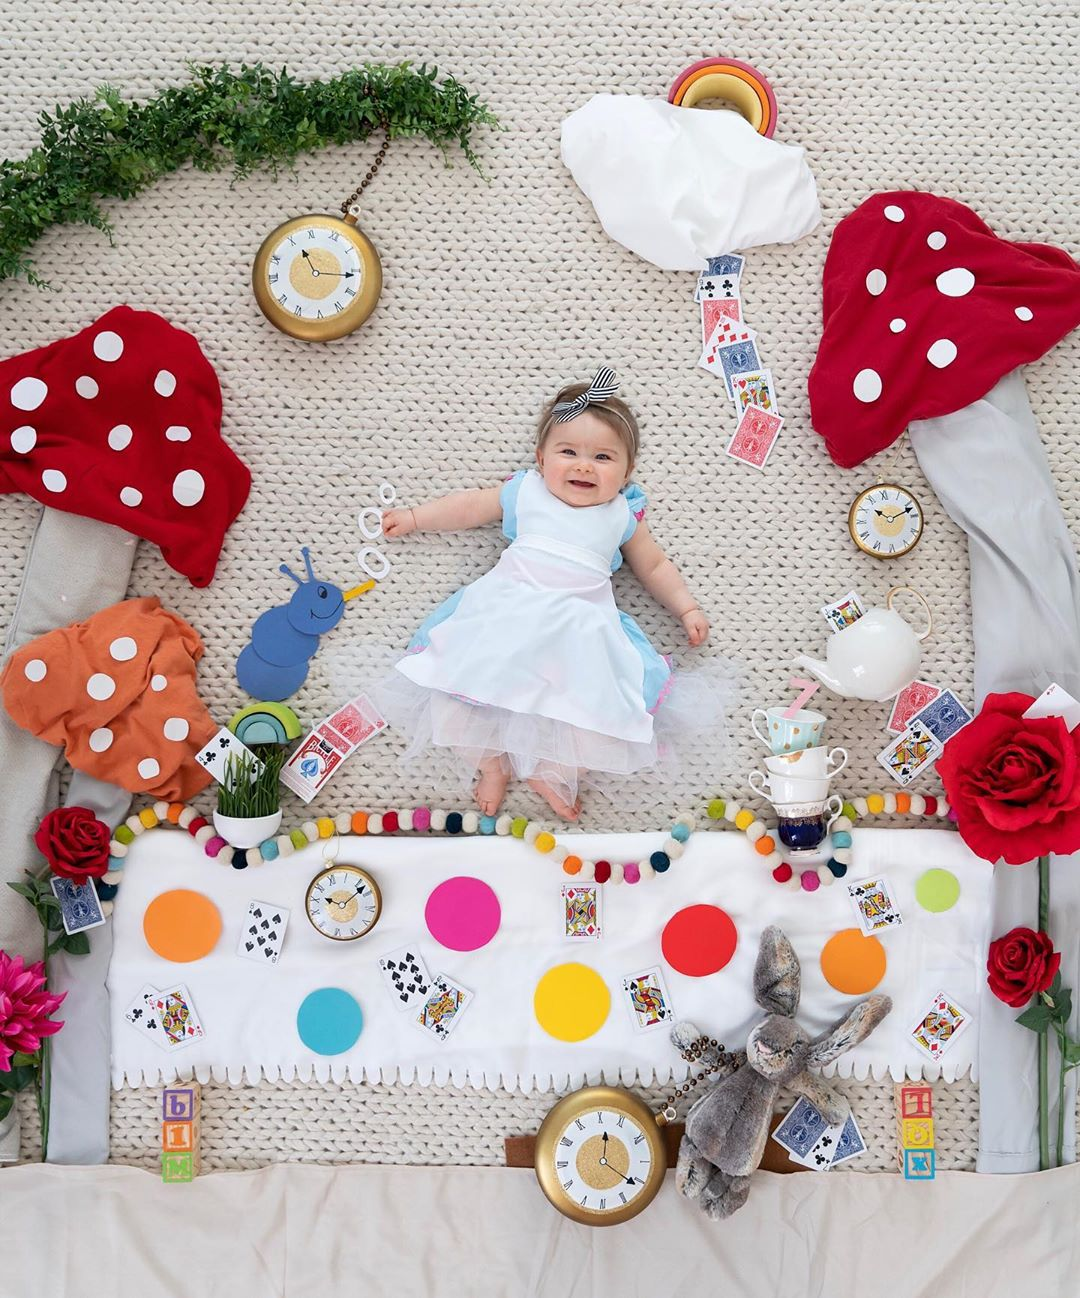 Georgia at 7-months old.  Image via @annawithlove on Instagram